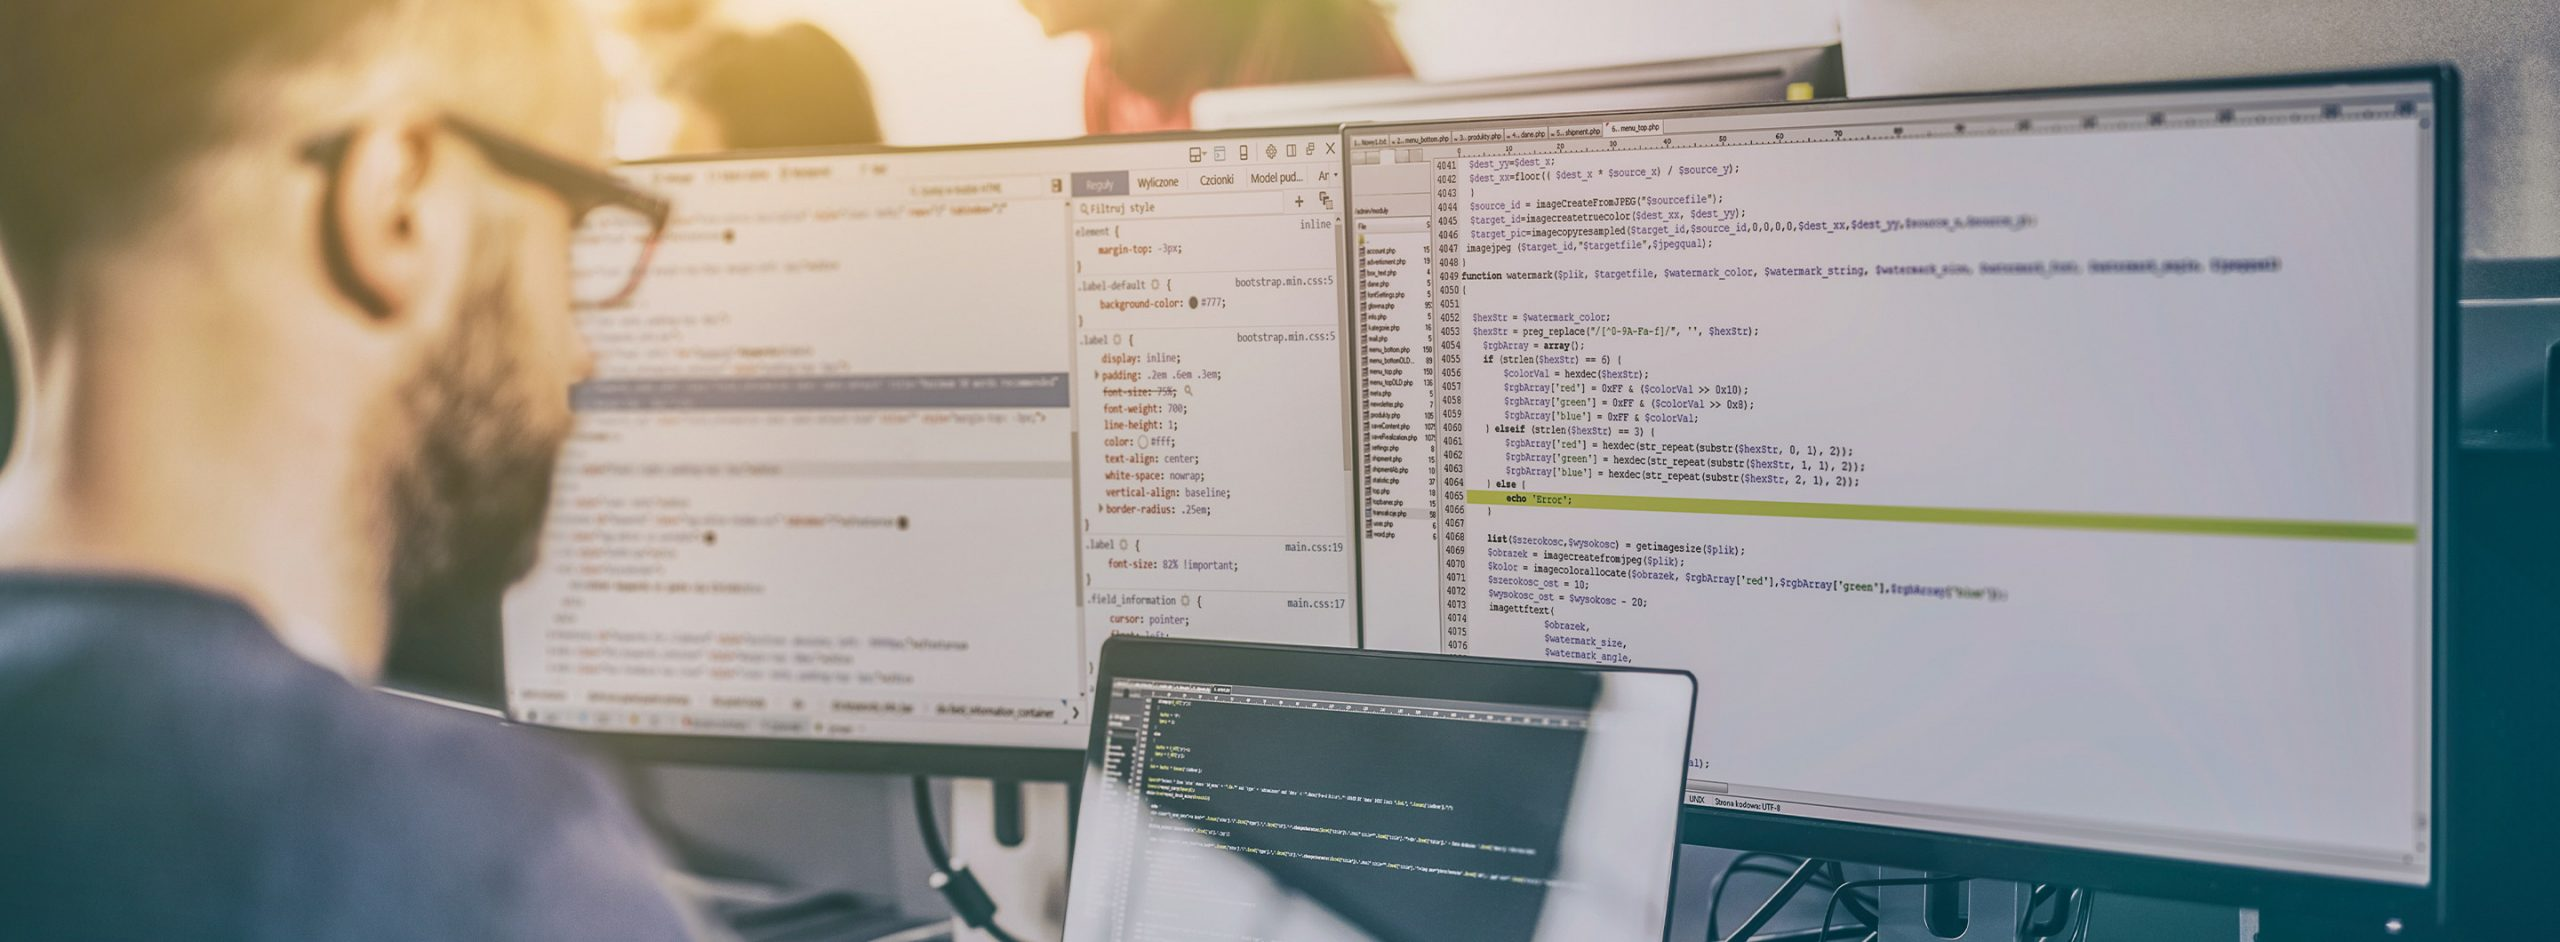 software development approaches with microservices